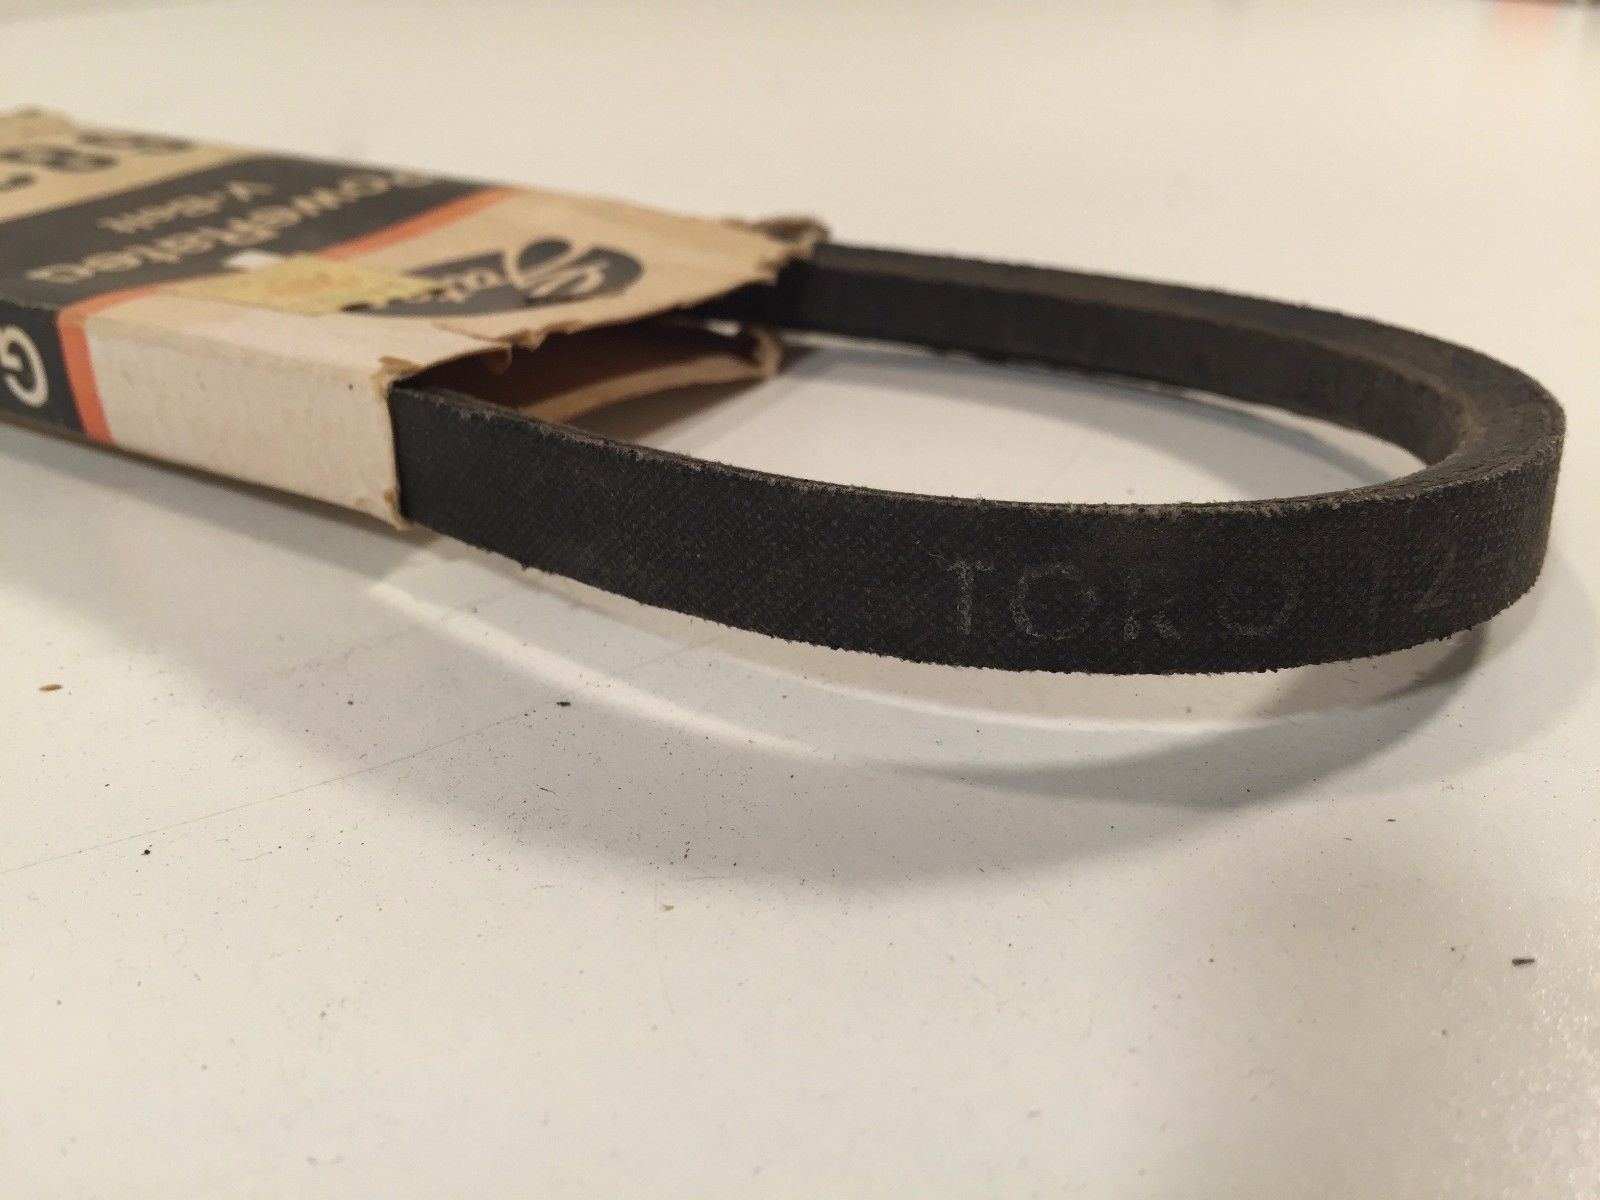 Genuine Toro 12-6220 Replacement Drive Belt New Old Stock